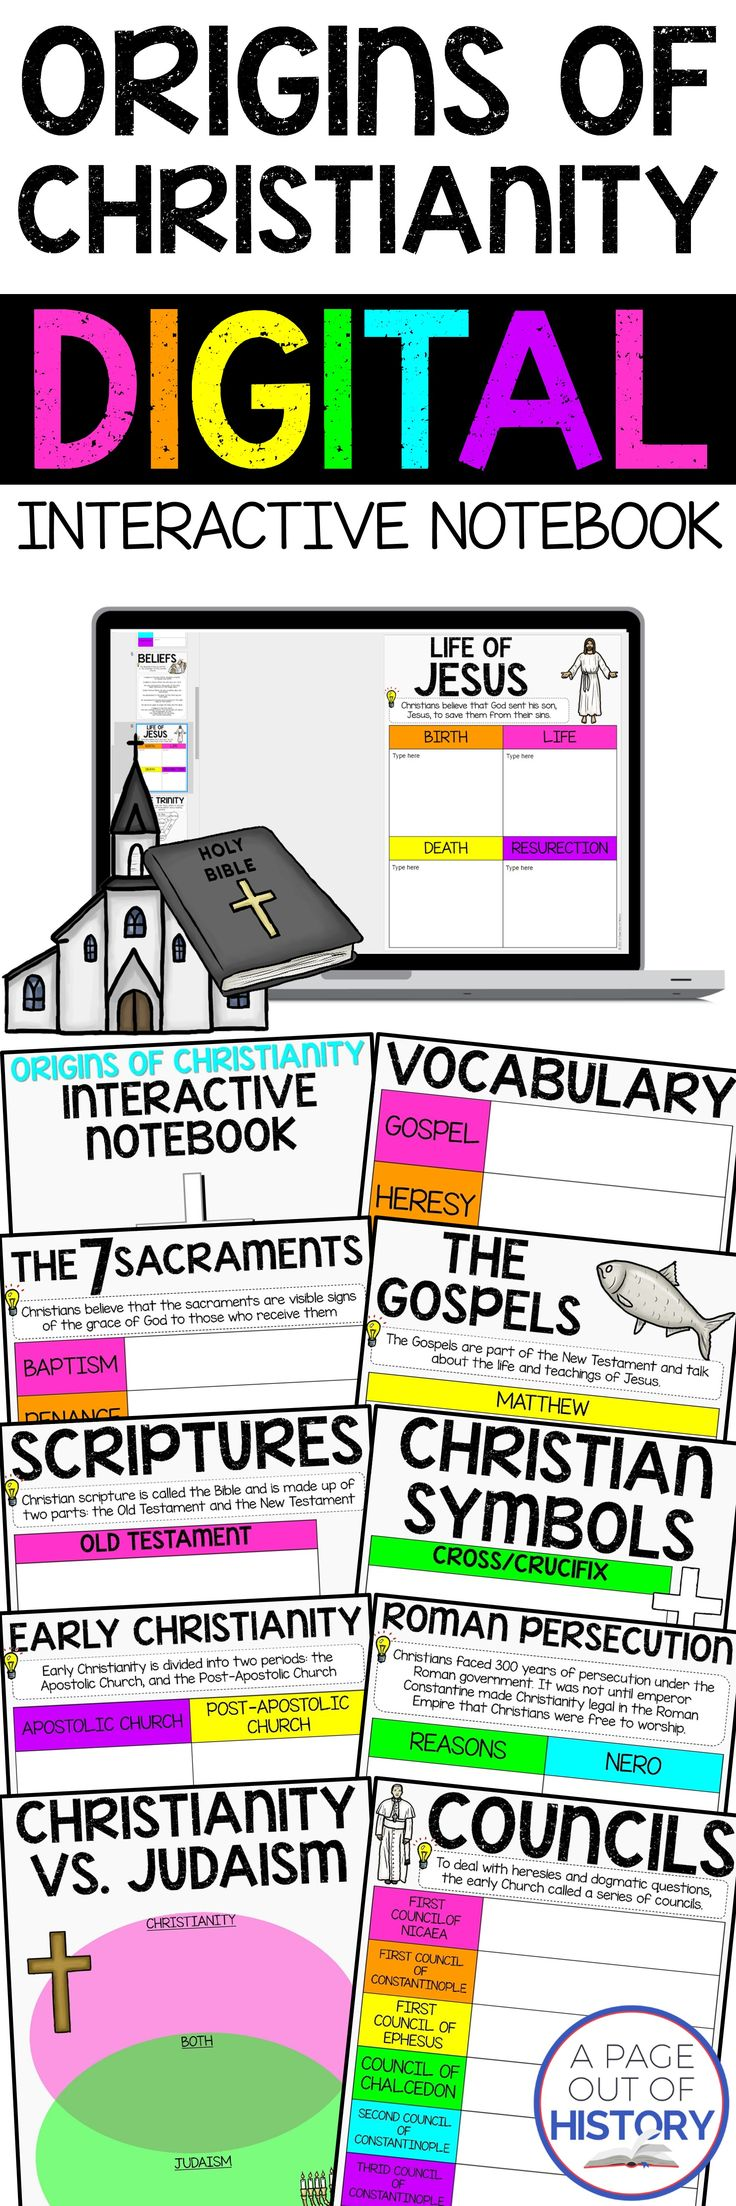 This paperless digital interactive notebook includes everything you need to teach a unit on the origins of Christianity in an engaging way! This resource covers the beginning of Christianity to the expansion of Christianity and the early councils.  The organizers in this resource can be used on their own, or as a supplement to student note. Interactive notebooks are a great tool to keep students organized and engaged in the lesson!